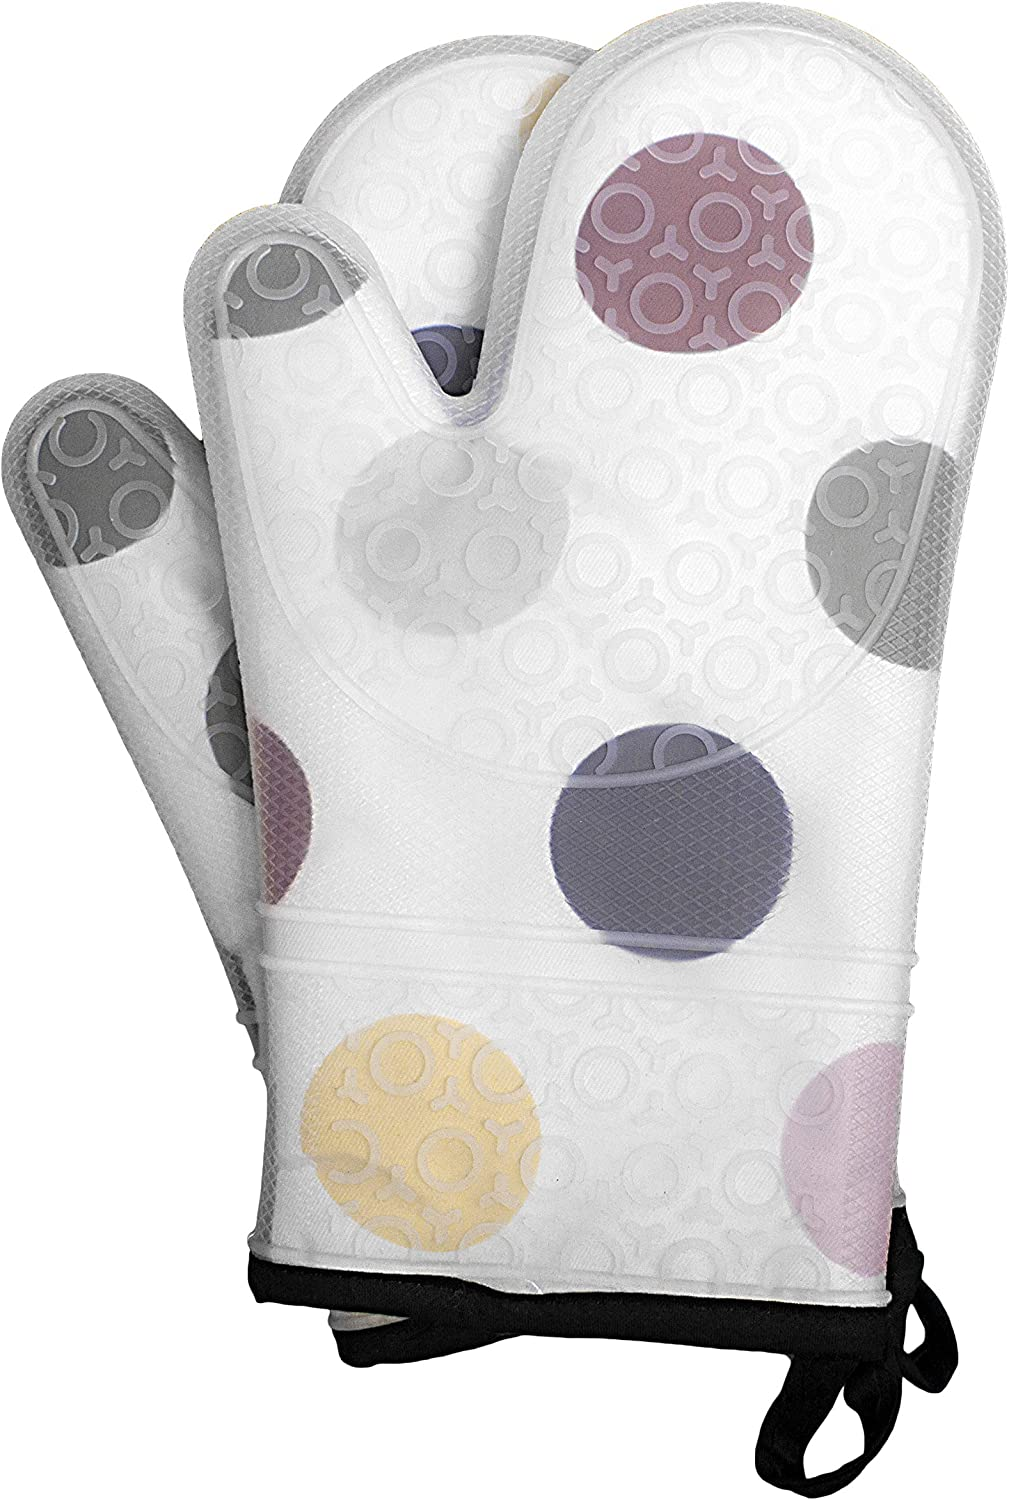 ARCLIBER 1 Pair Silicone Oven Mitts, Heat Resistant, Non-Slip Oven Gloves, Baking Gloves for Cooking, Baking, Grilling, Barbecue